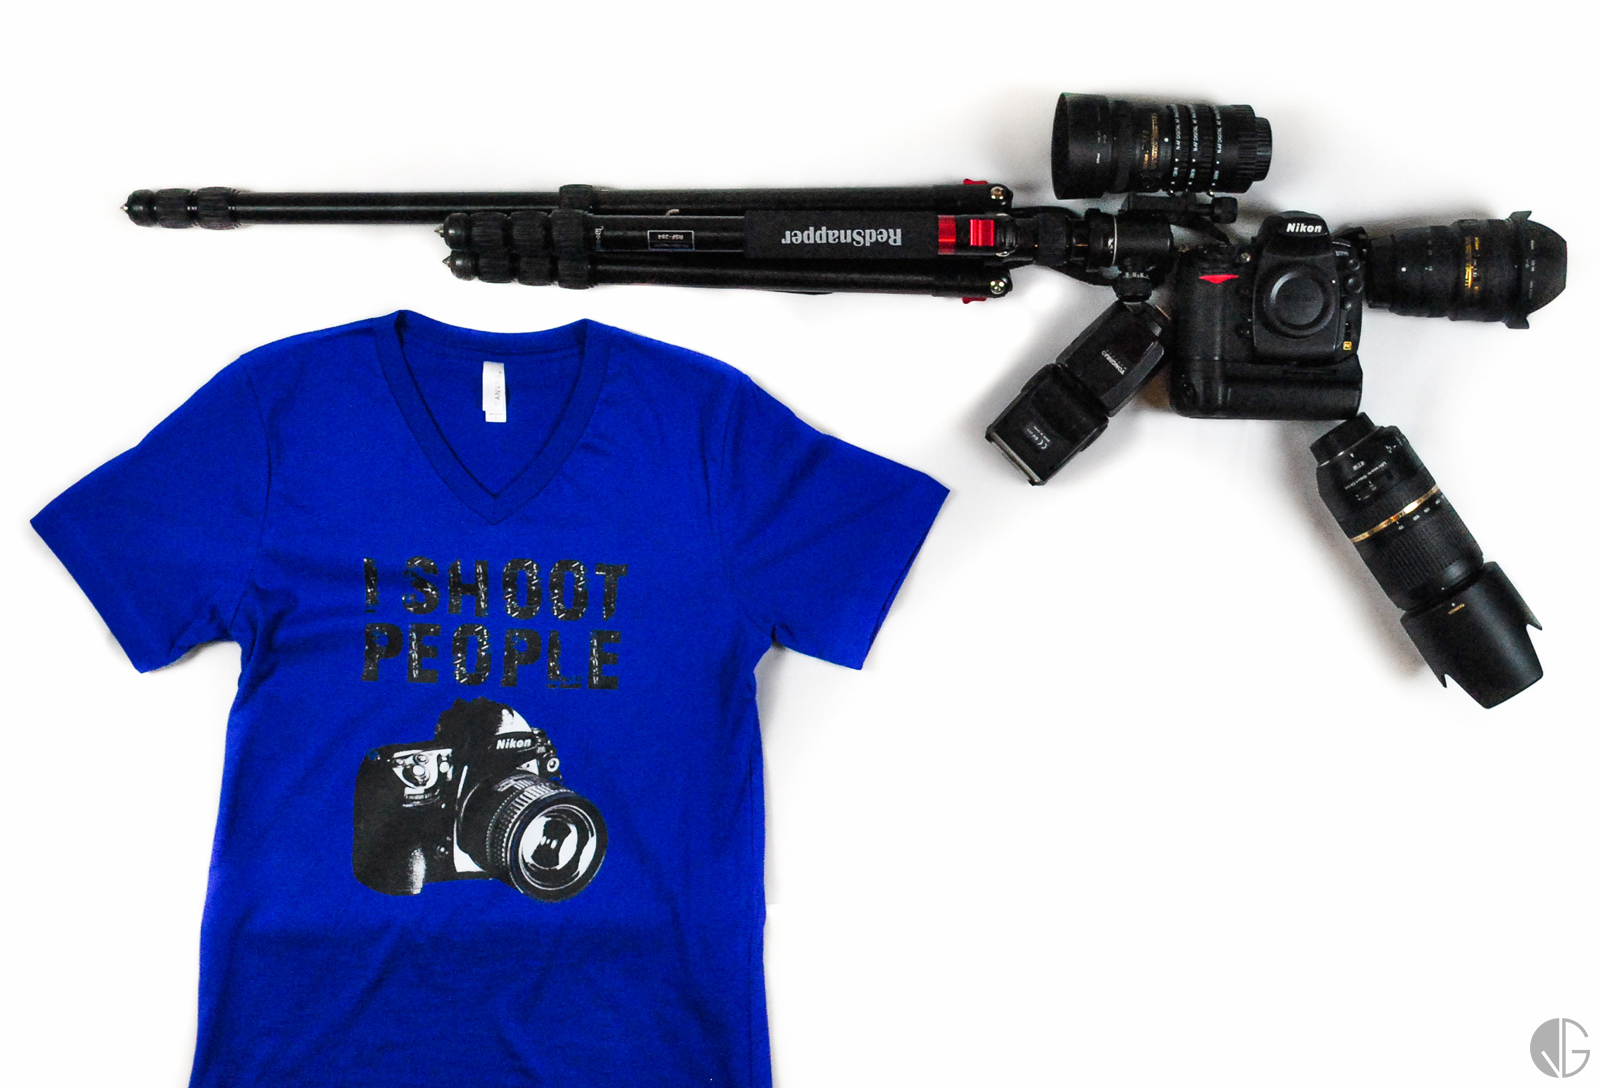 This was my gear at the time, plus a t-shirt received as a present, to go with it all.